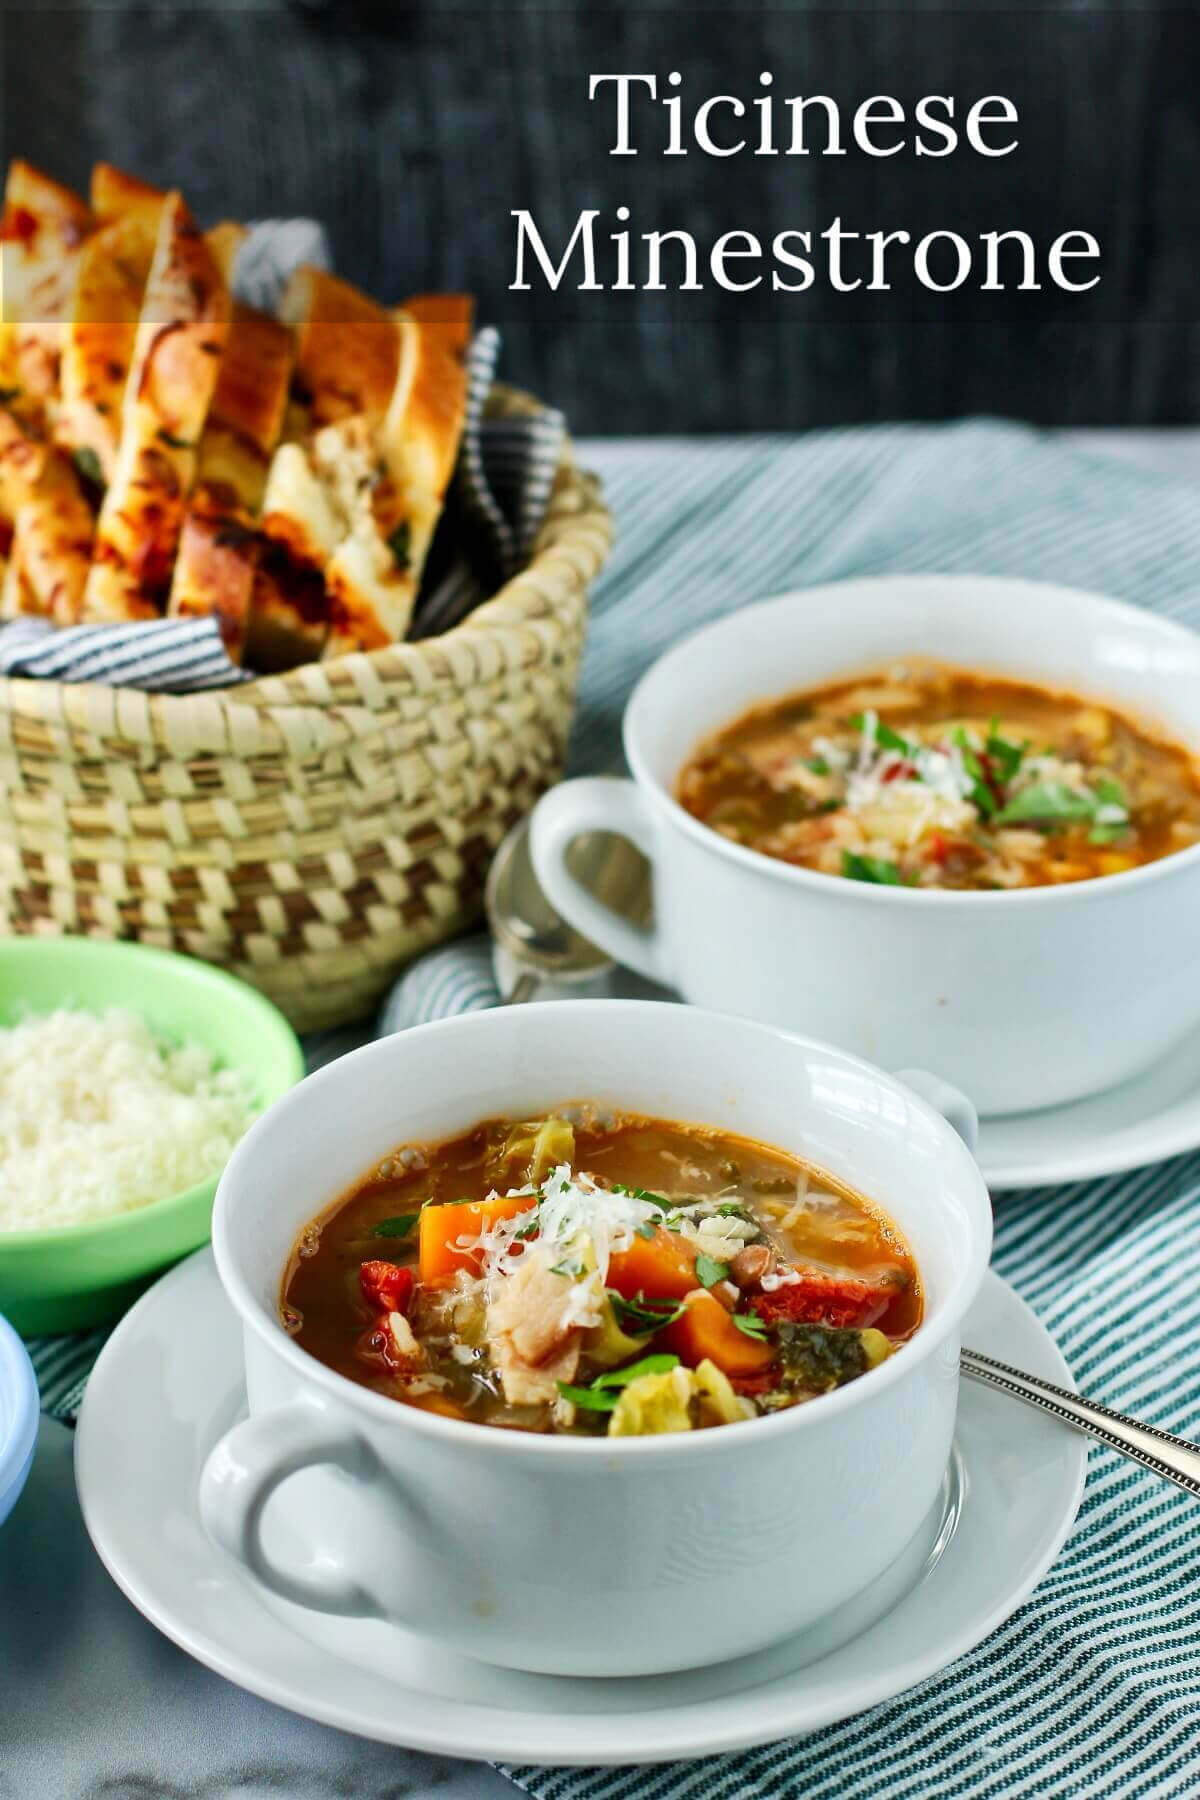 Ticinese Minestrone soup with Savoy cabbage and cheesy bread